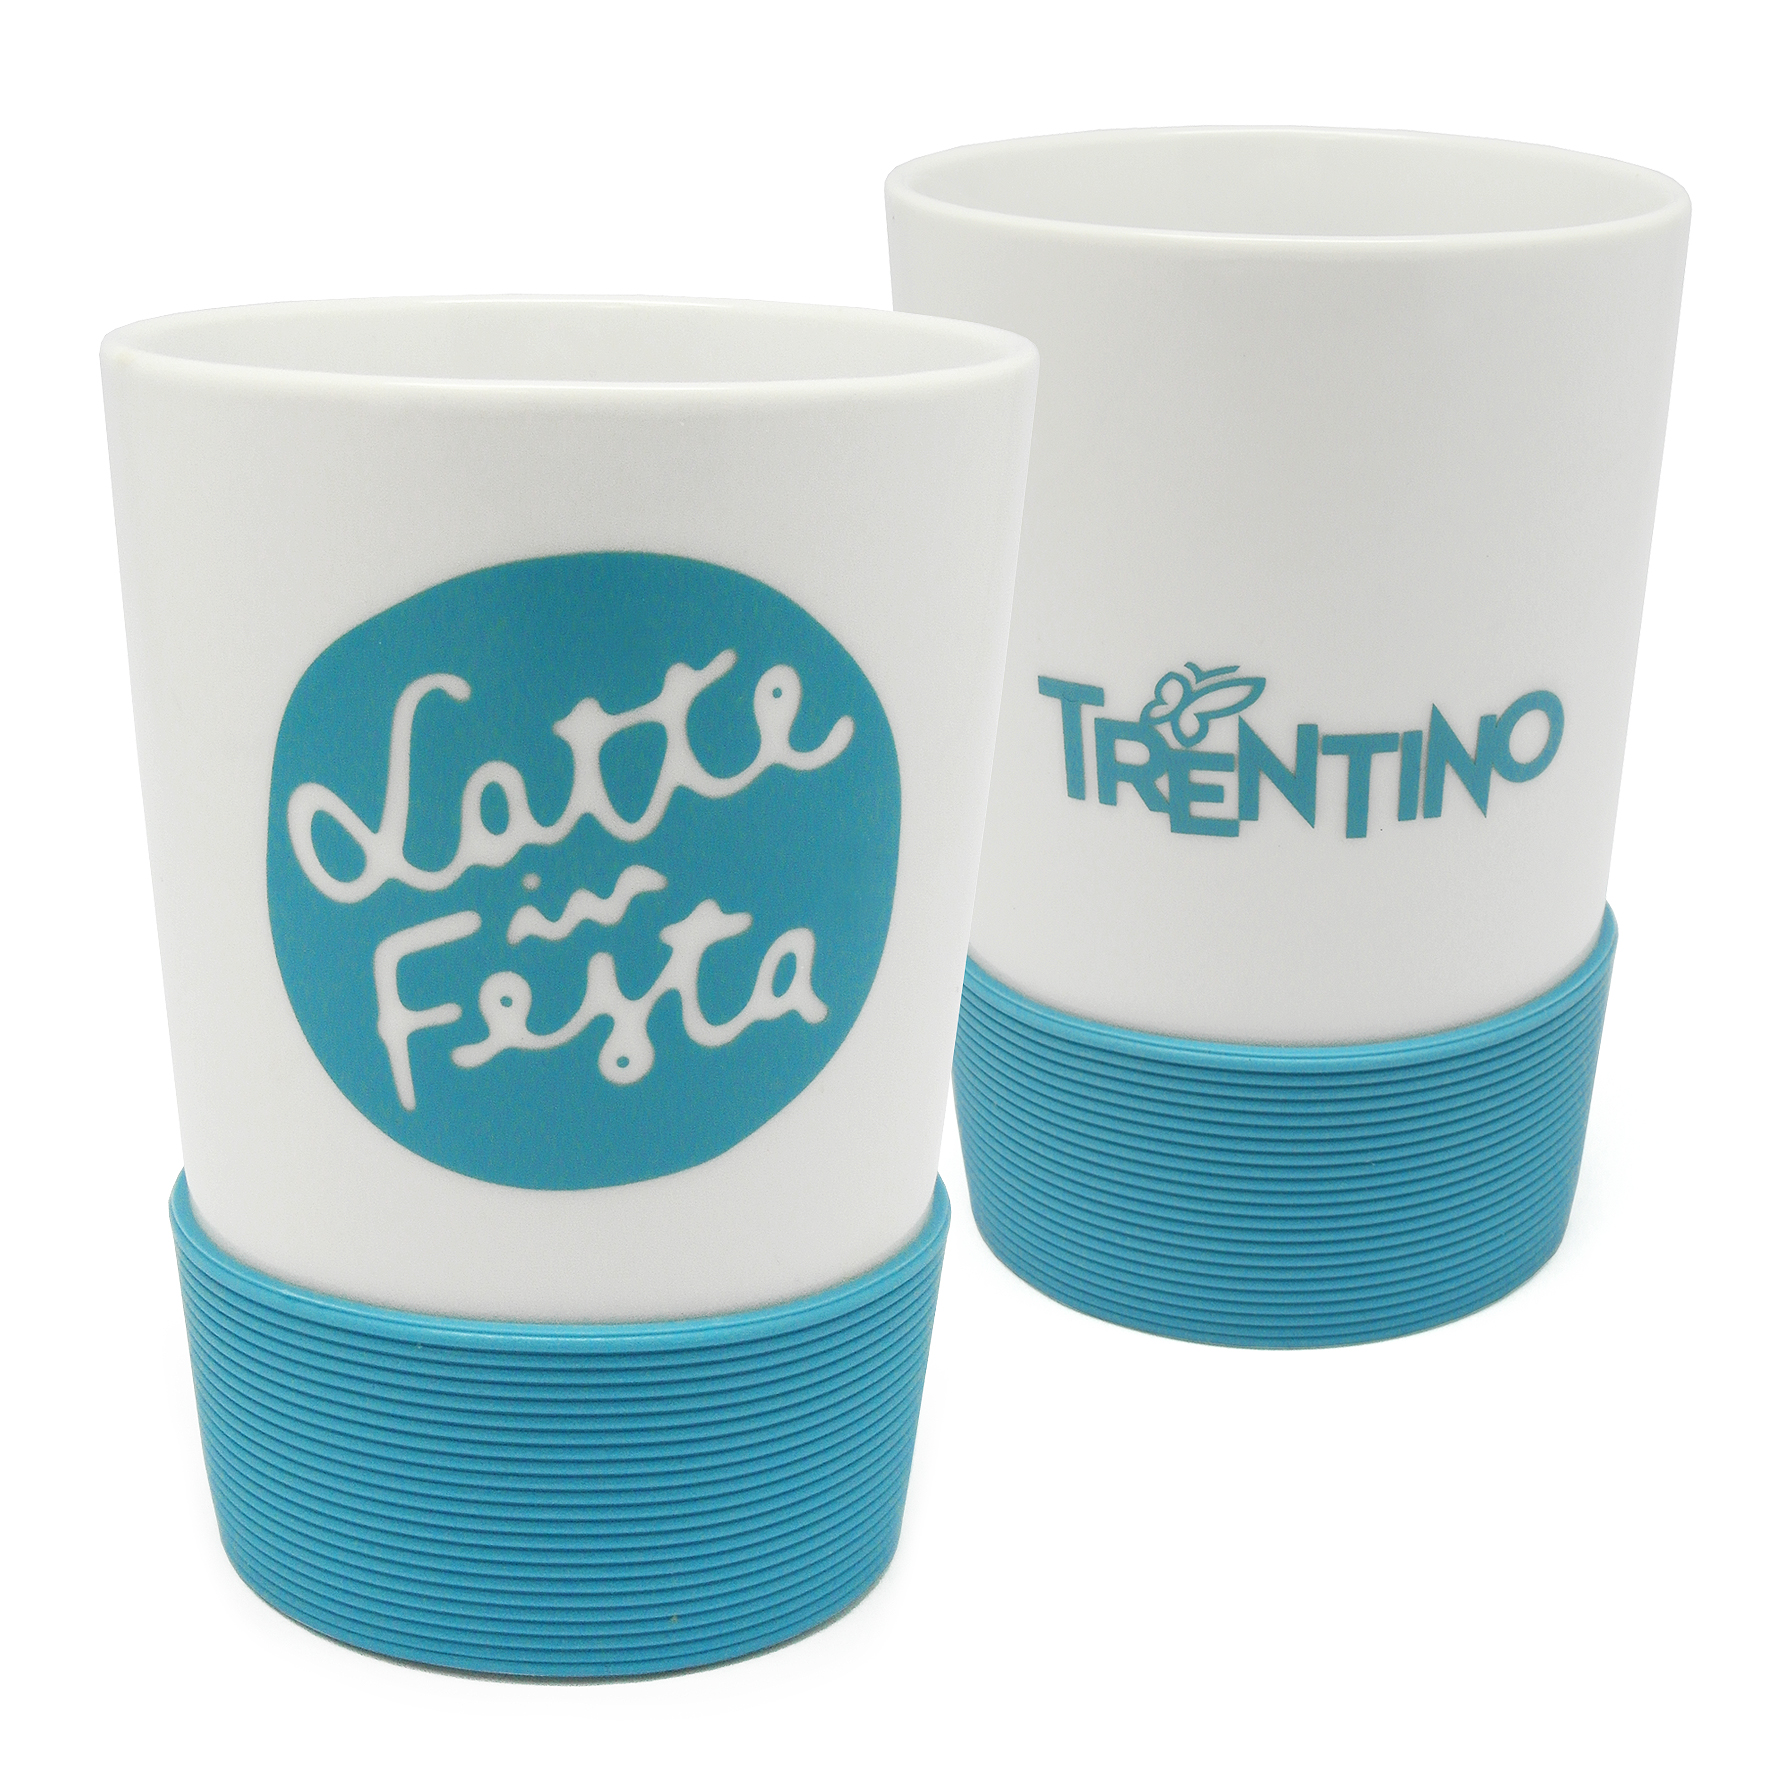 tazza-latte-in-festa-trentino